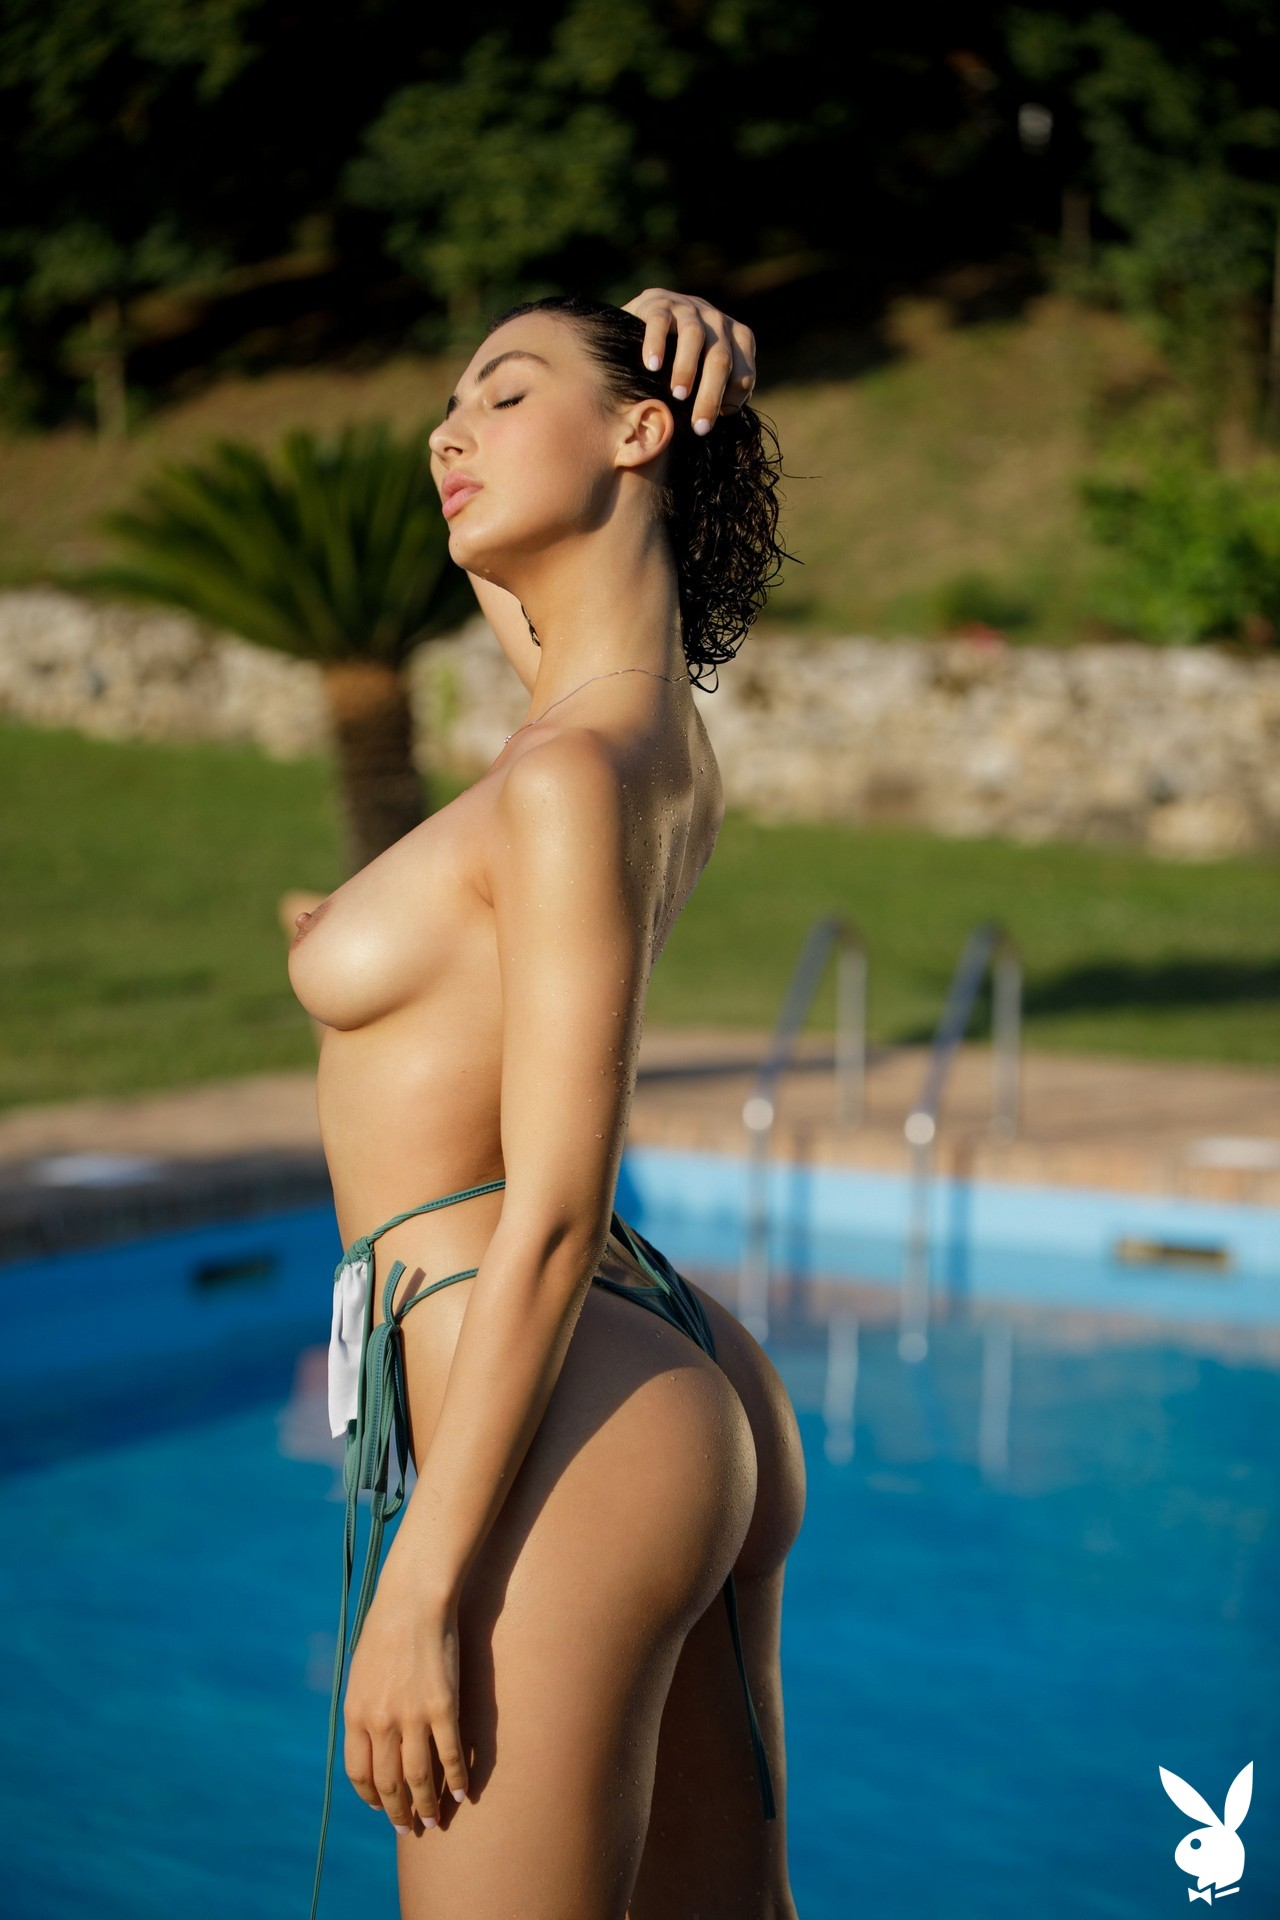 Gena Miller In Immerse Yourself Playboy Plus (12)